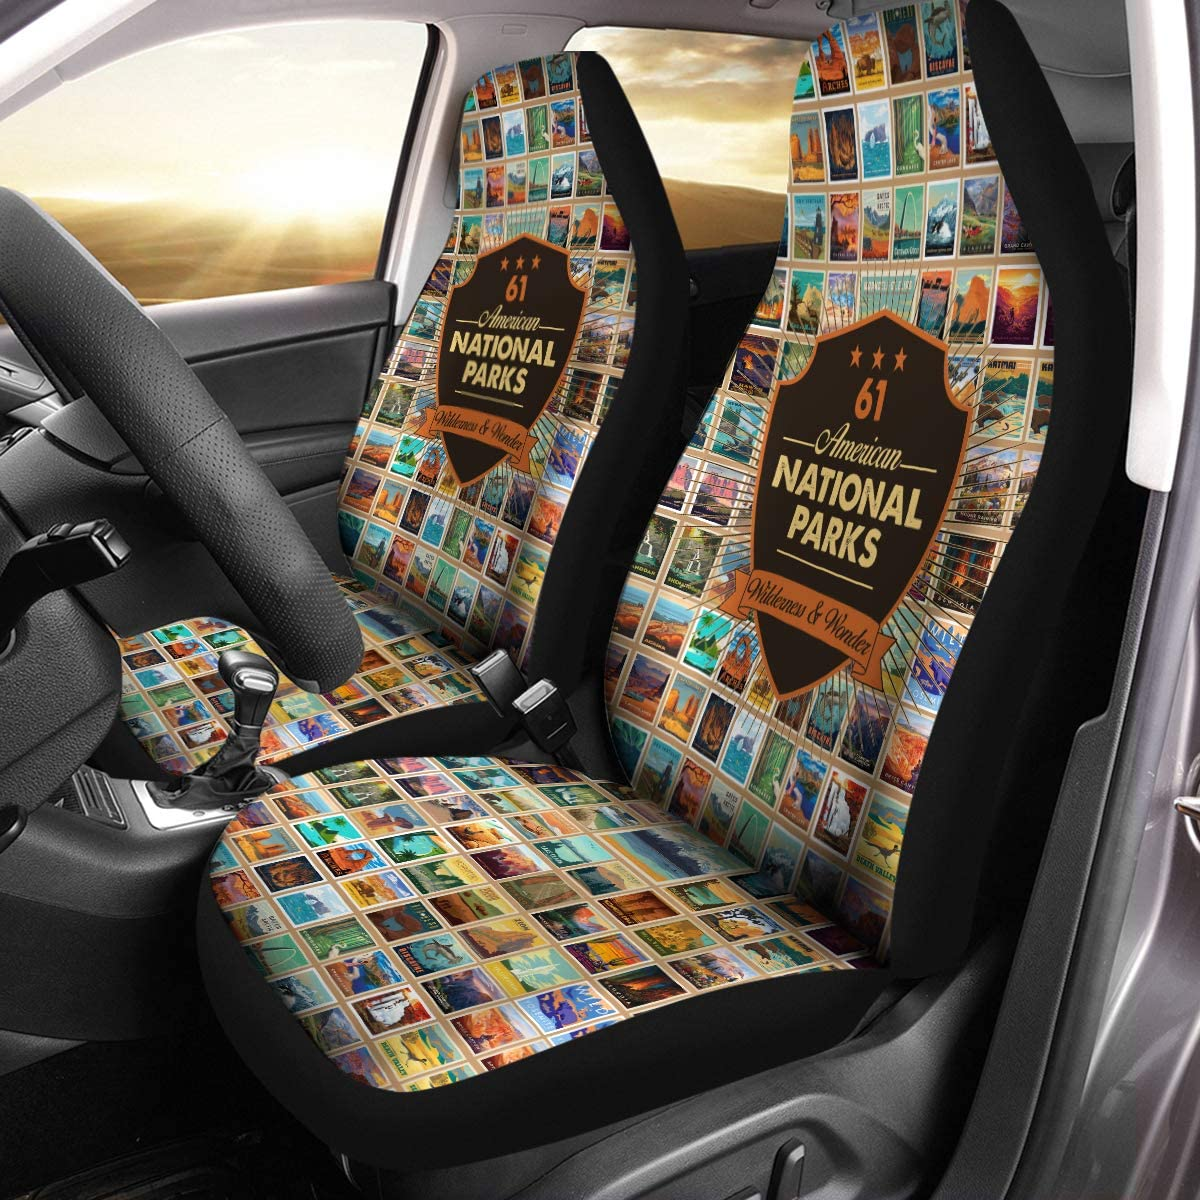 VTH Global 61 American National Parks RV Camping Camper Airbag Compatible Seat Covers Car Accessories Size Universal Fit for Most Cars SUV Truck